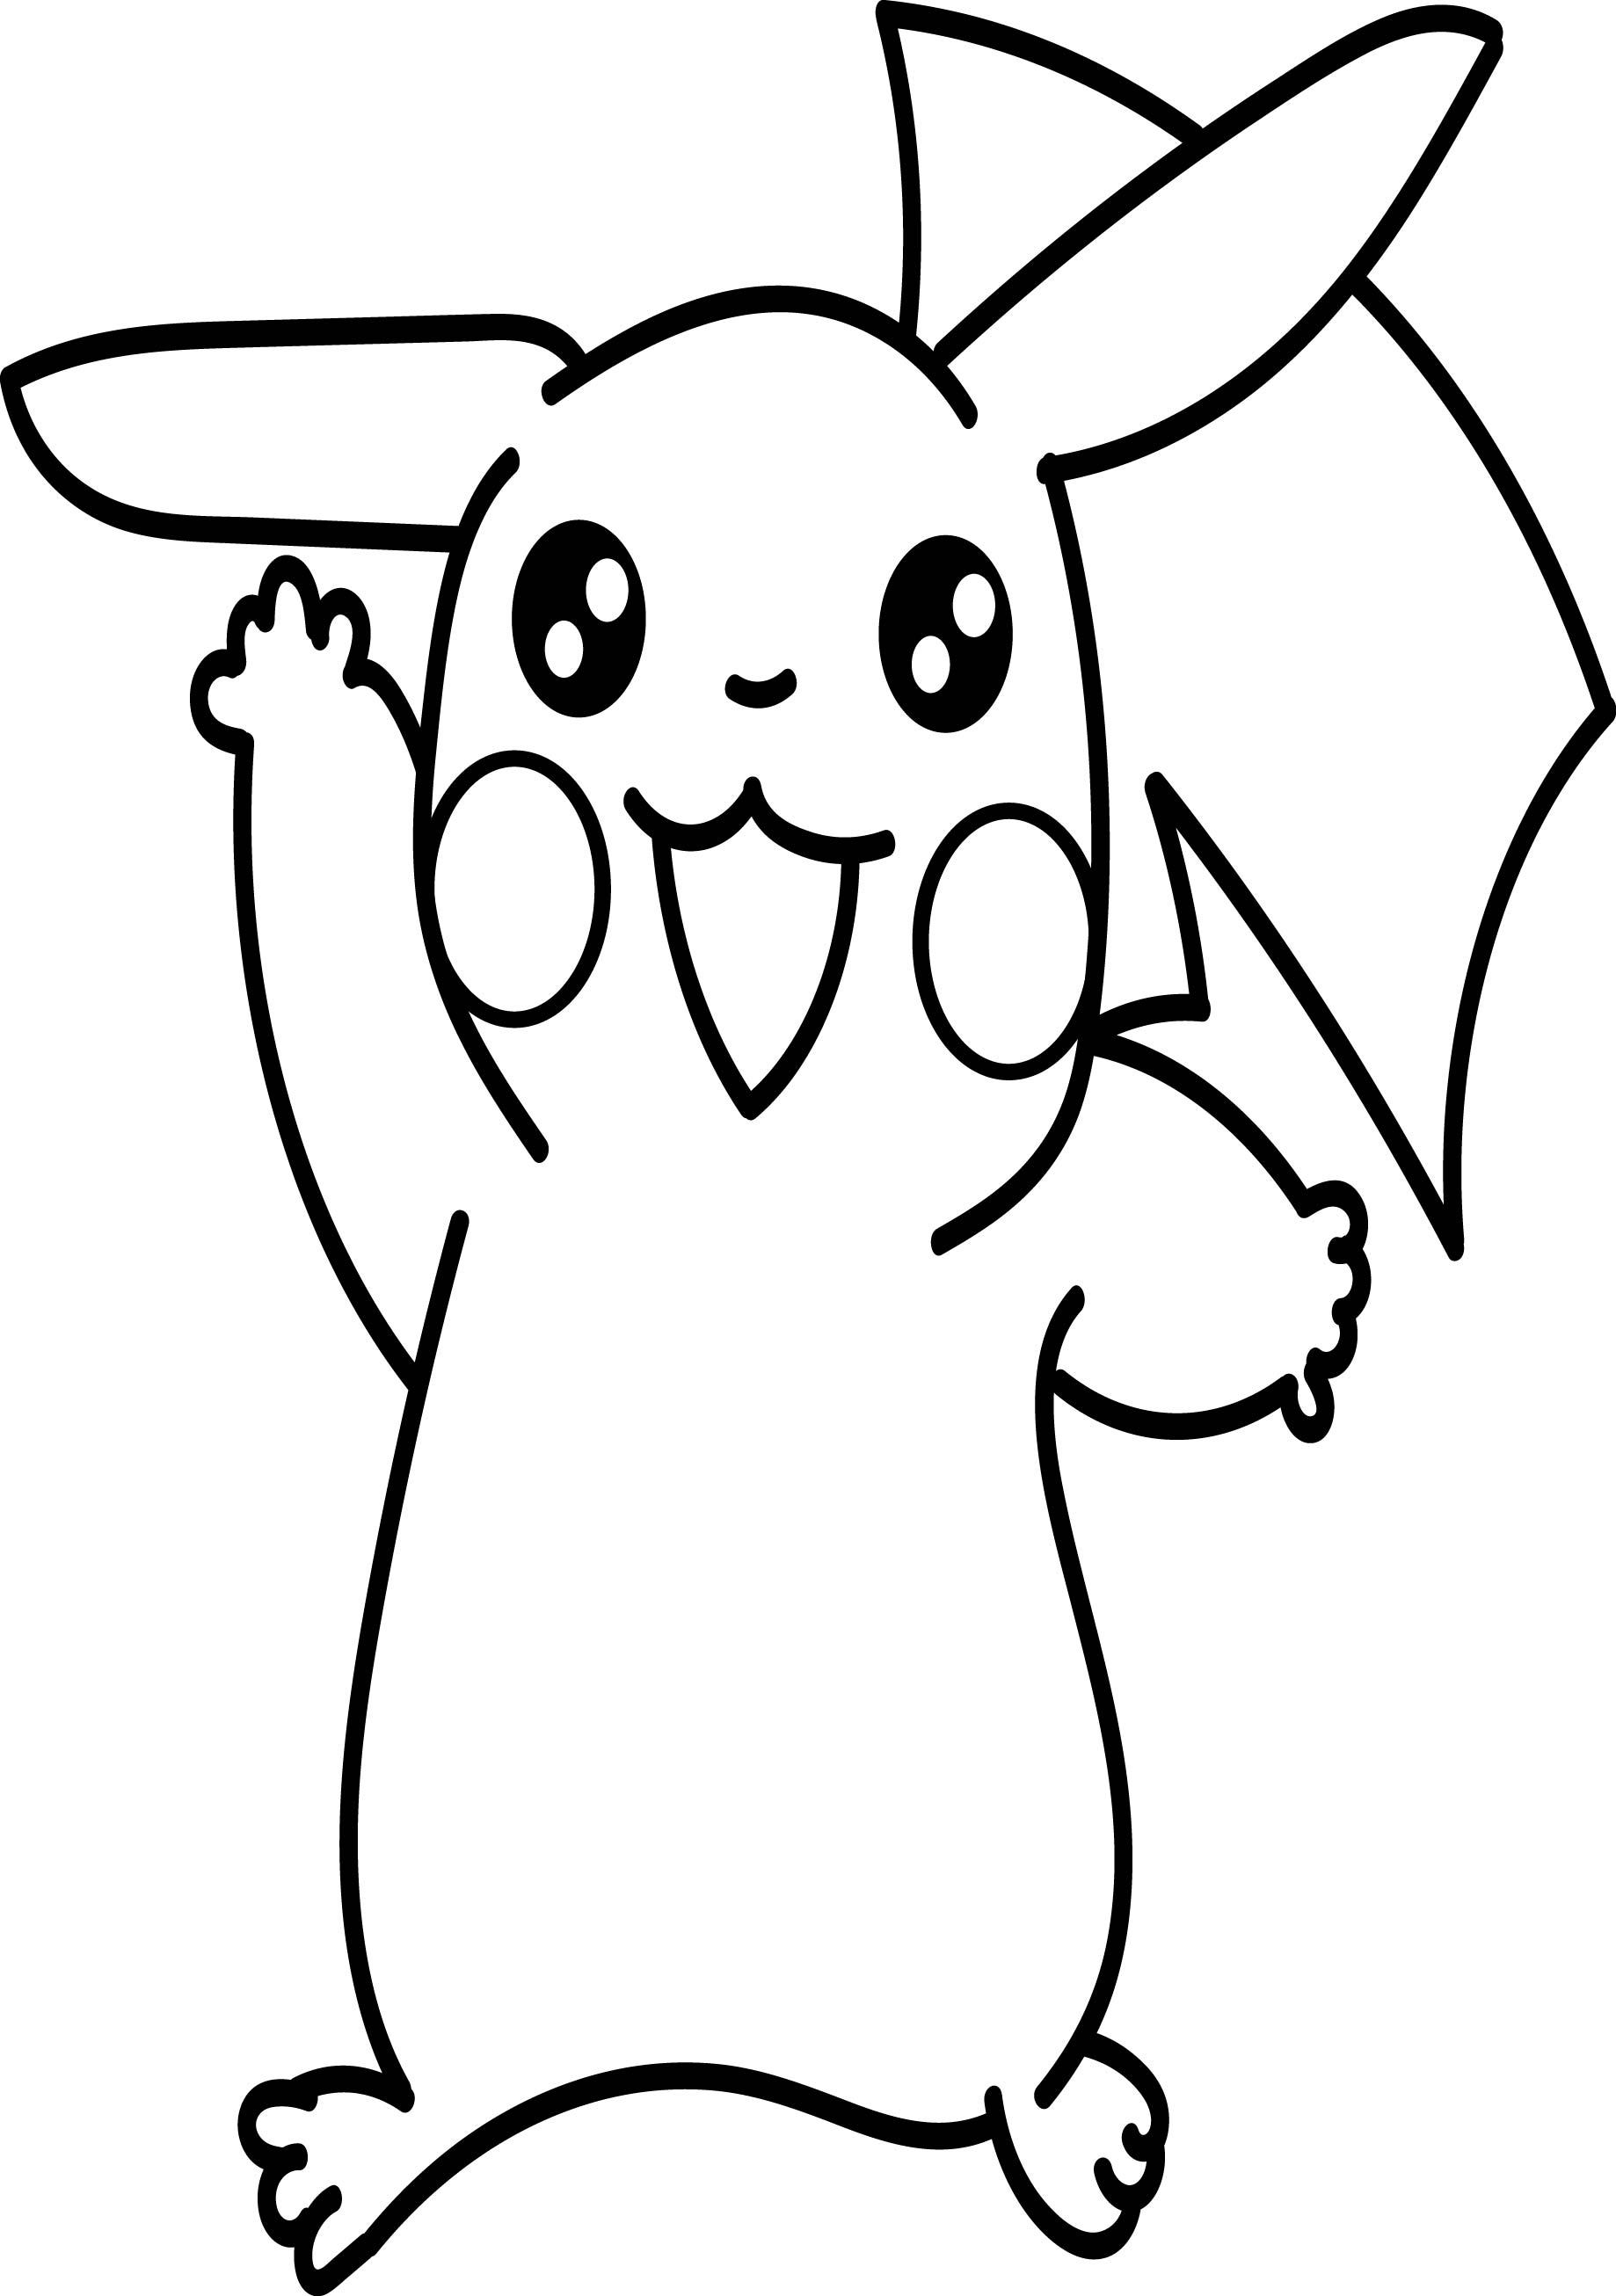 Anime pikachu coloring page for Pikachu coloring page